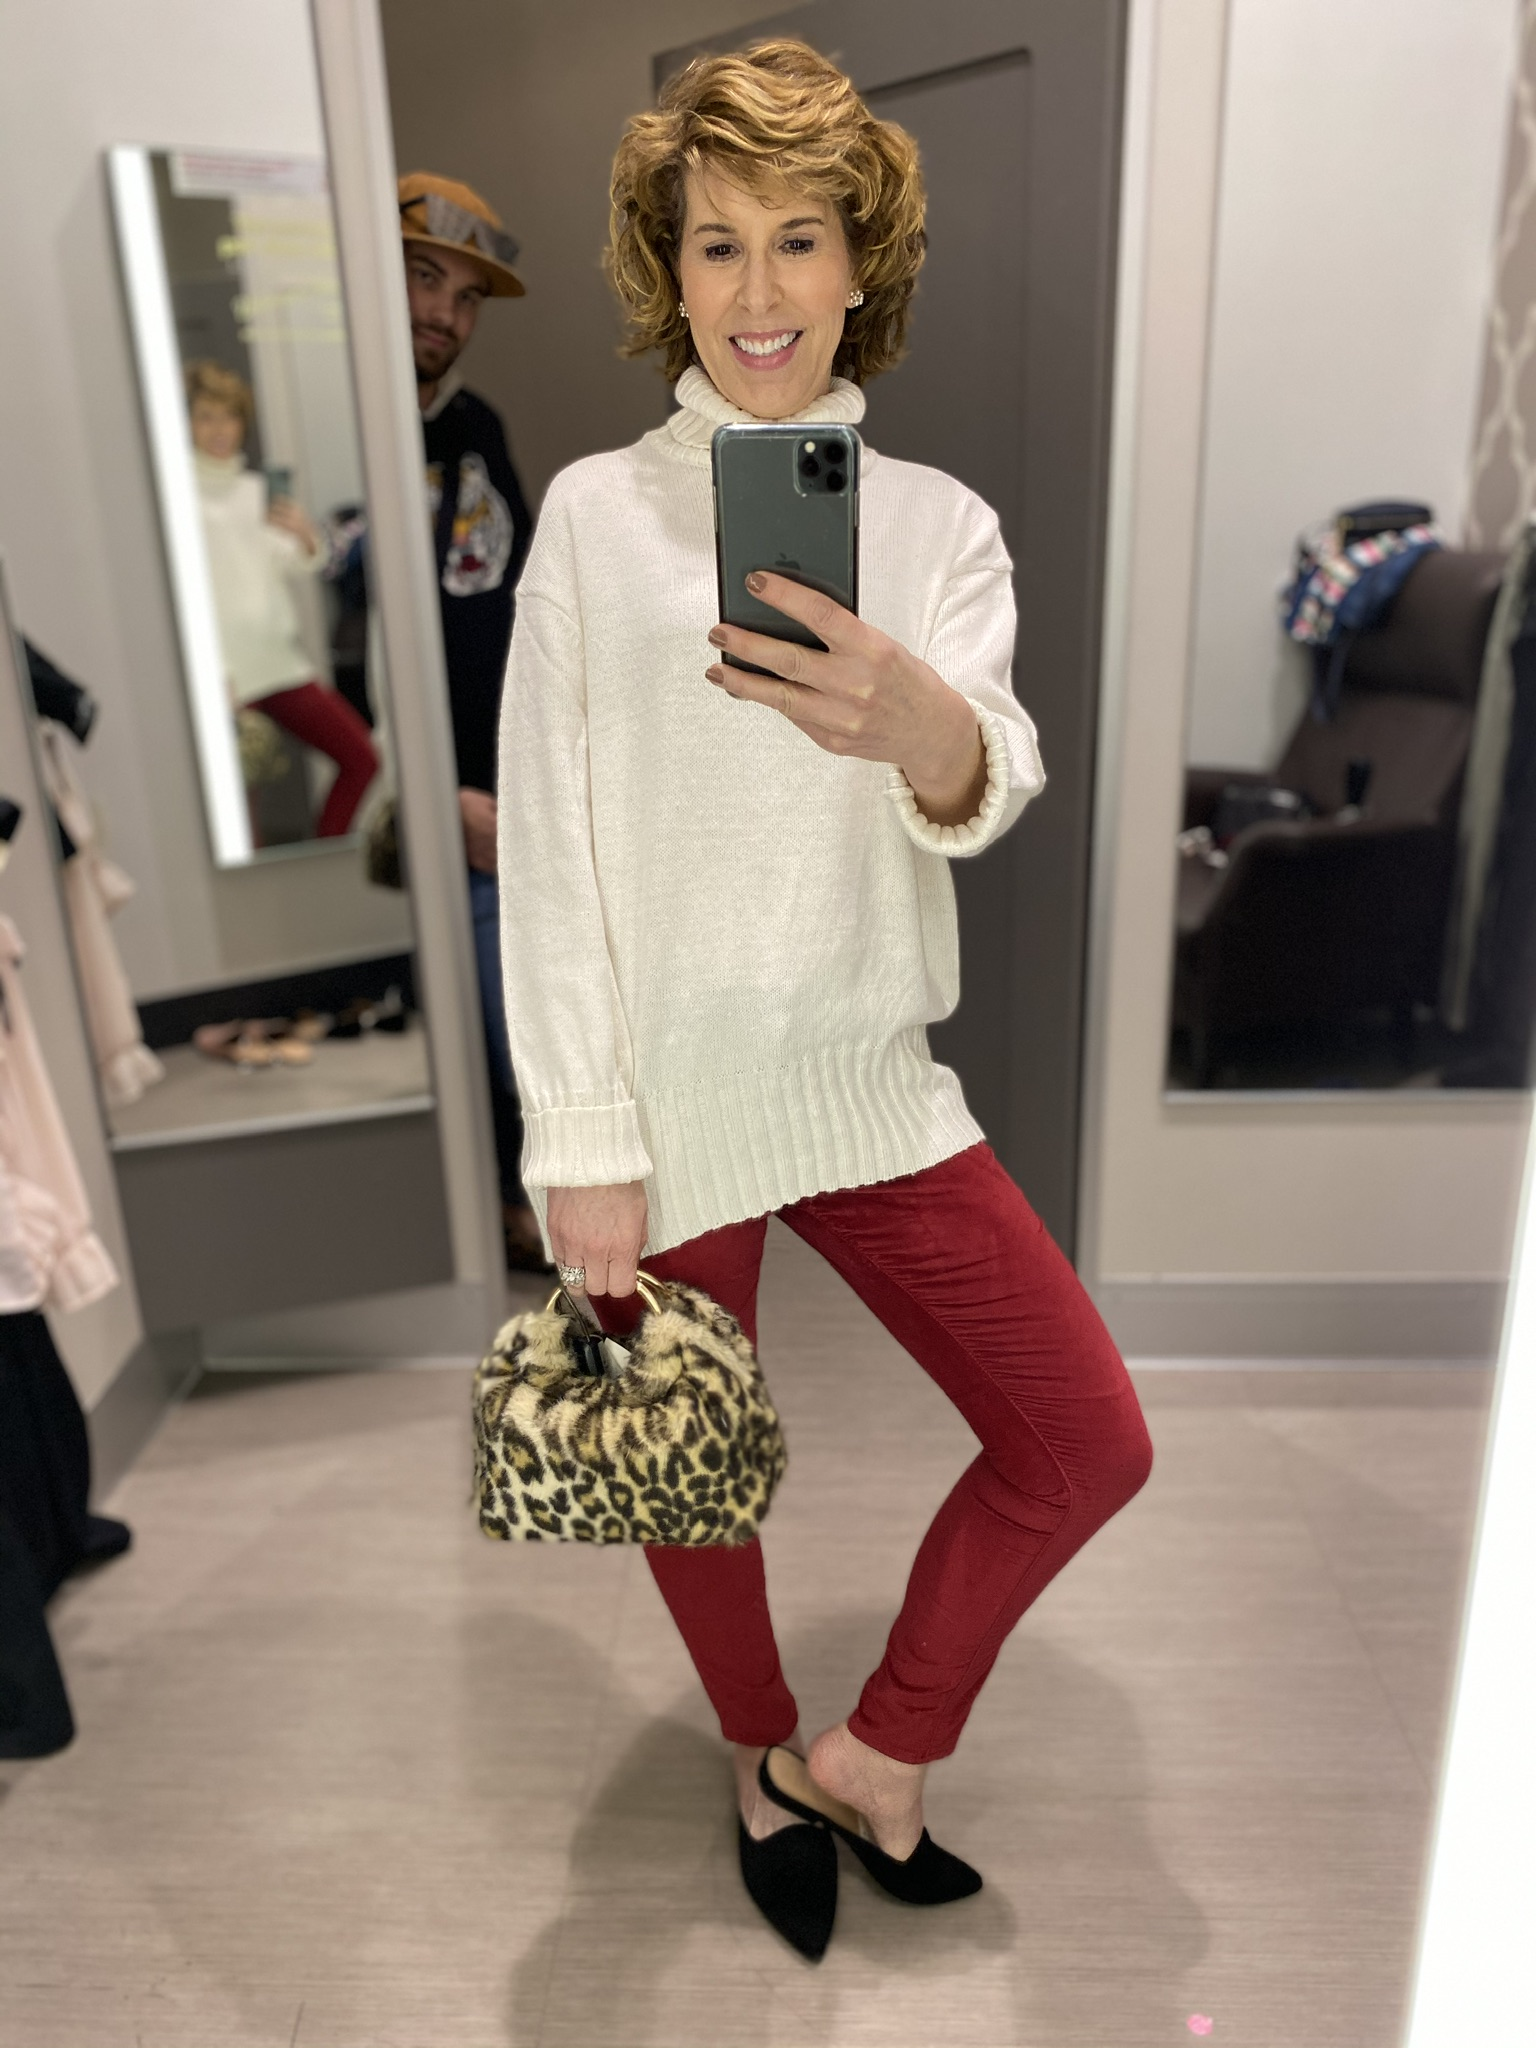 dressing room selfie of woman in red velvet jeans and cream turtleneck with animal print purse